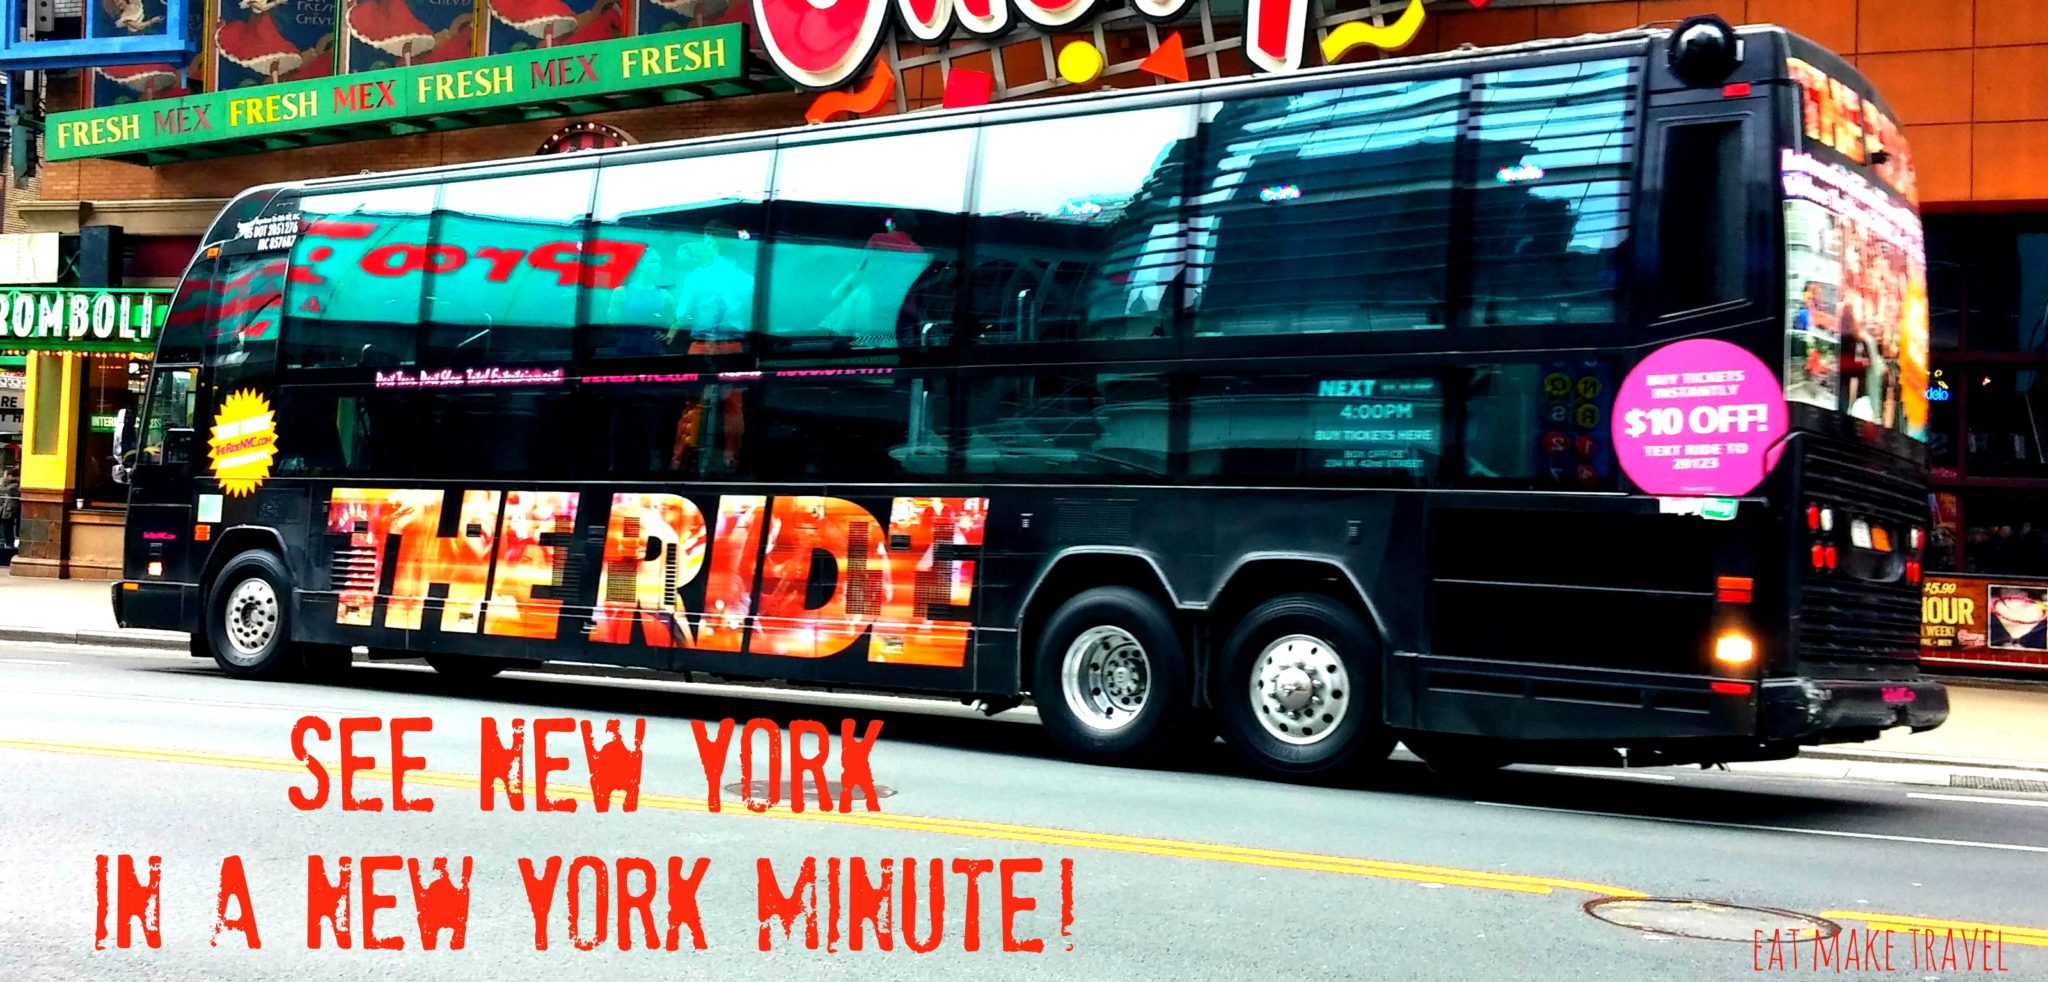 See New York in a New York Minute!